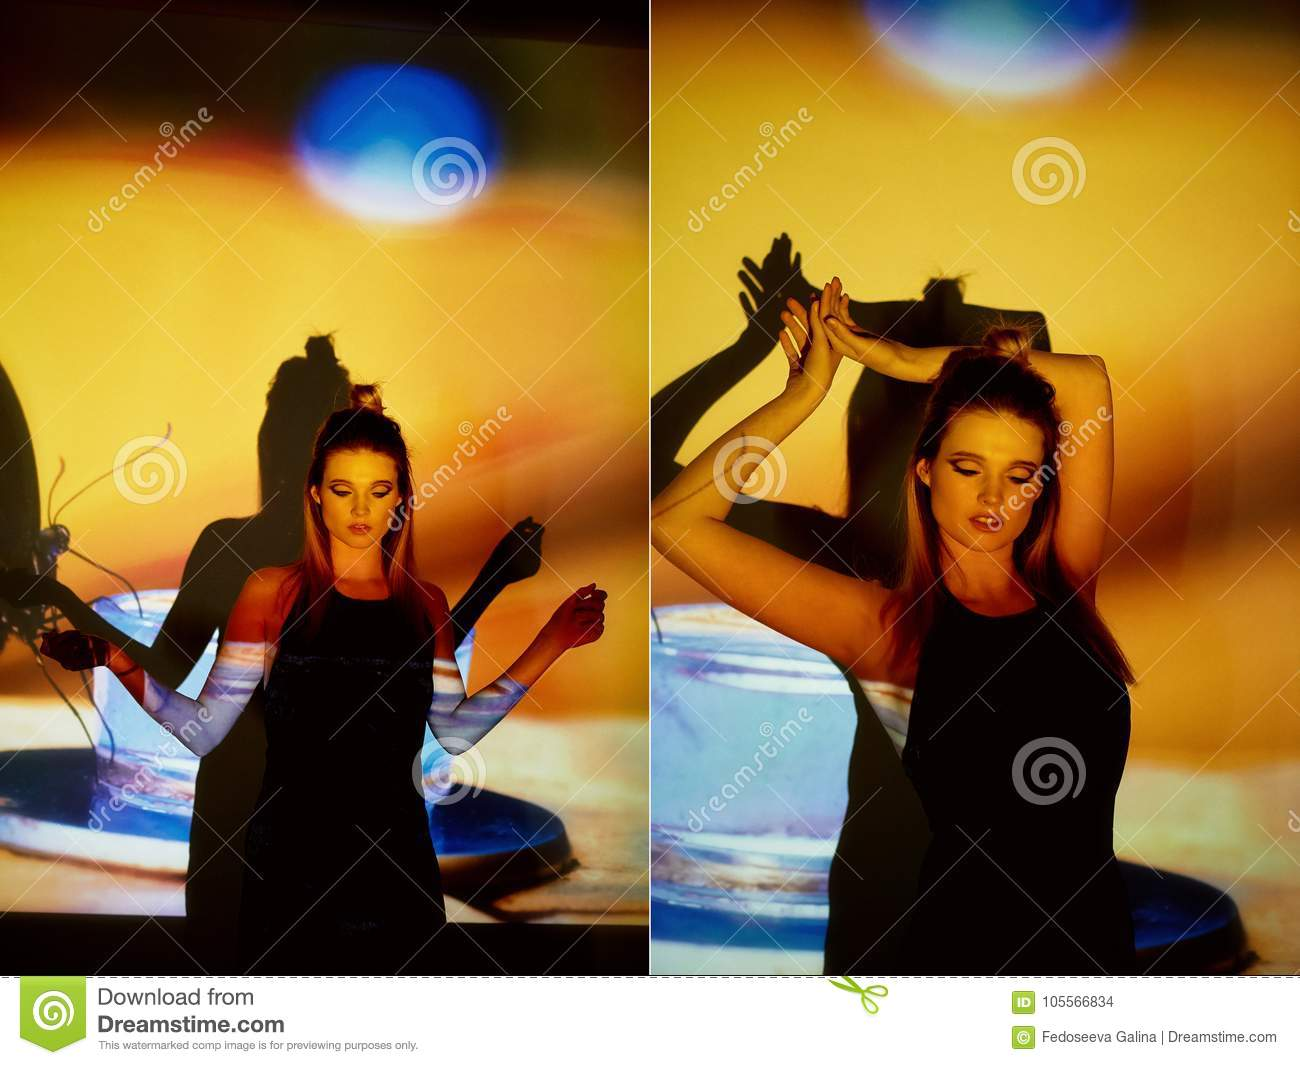 Download Abstract Portrait Of A Beautiful Girl In The Light Projector Warm Orange